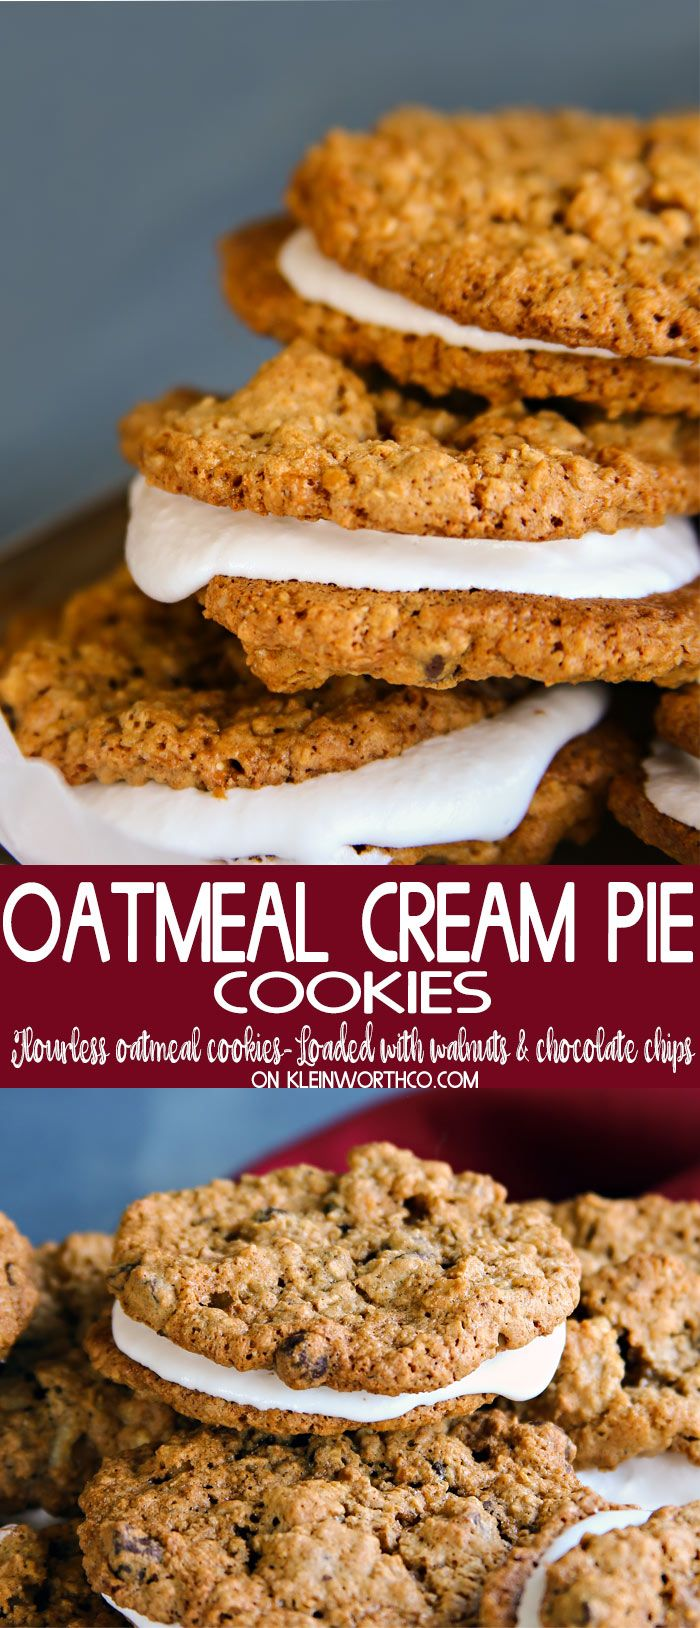 Oatmeal Cream Pie Cookies made with peanut butter, flourless oatmeal cookies, packed full of walnuts & chocolate chips & filled with marshmallow cream. YUM! via @KleinworthCo